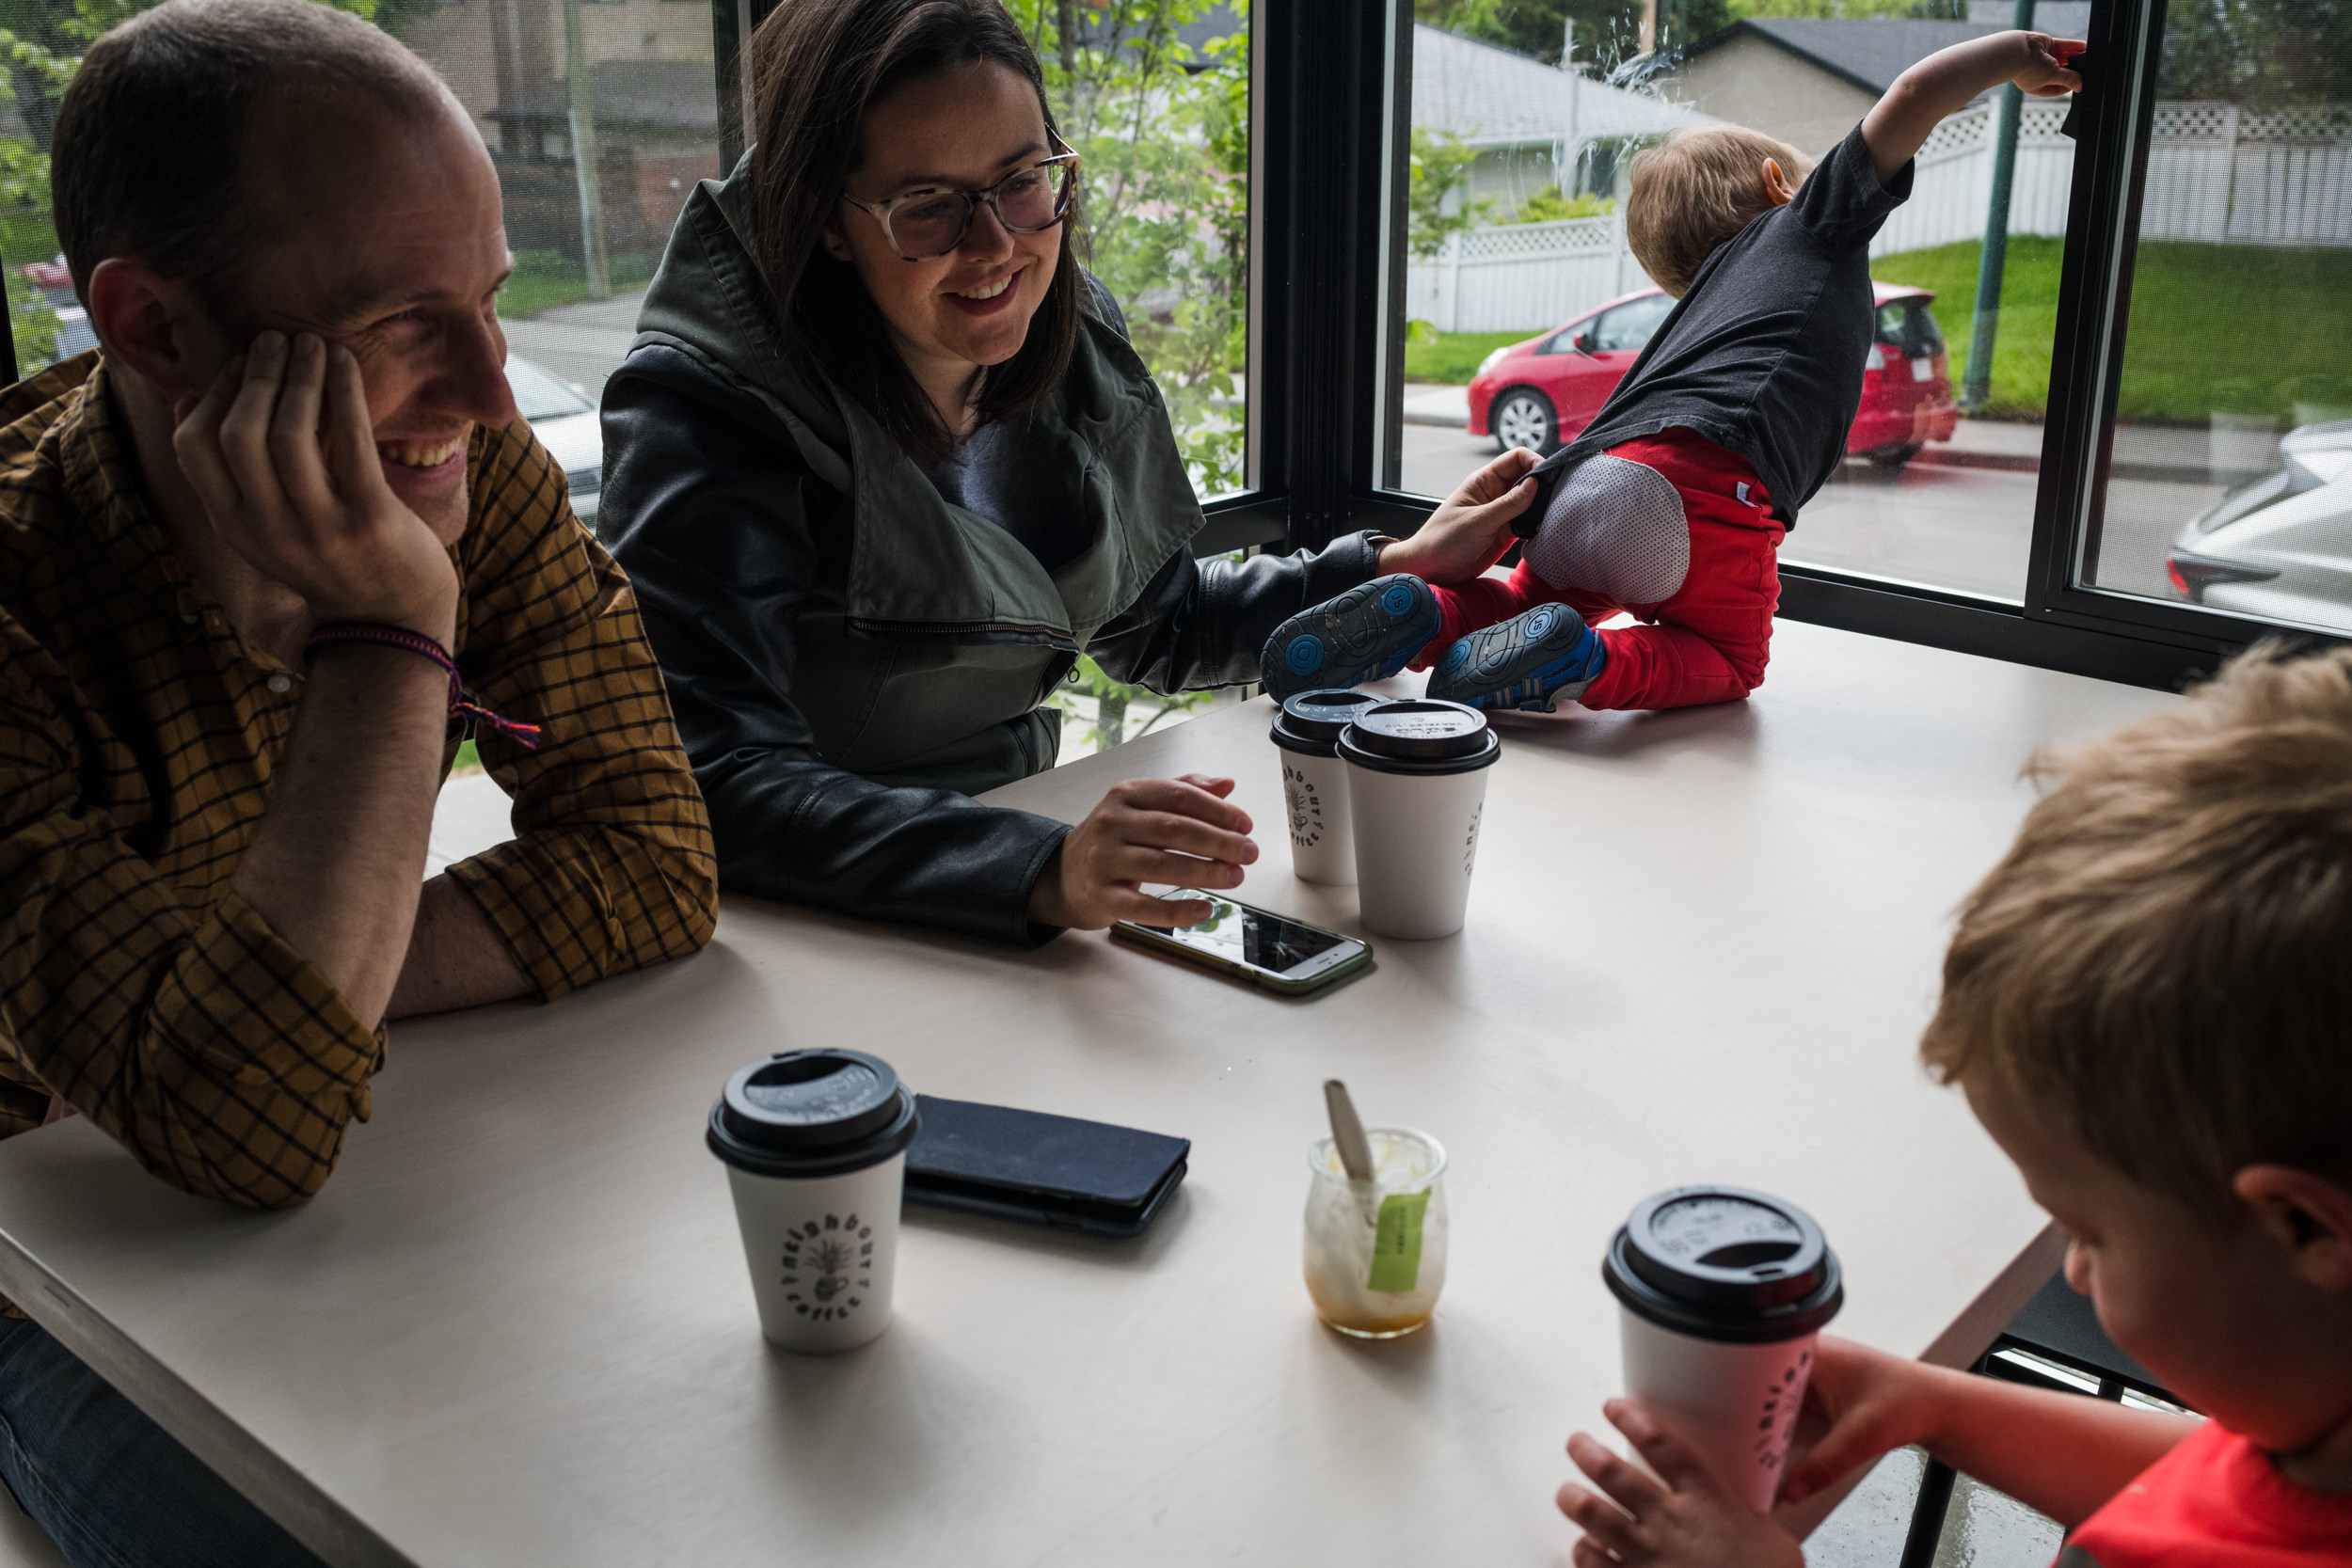 Parents enjoying a coffee with their older son while keeping a hand on their toddler climbing the table and opening a window.